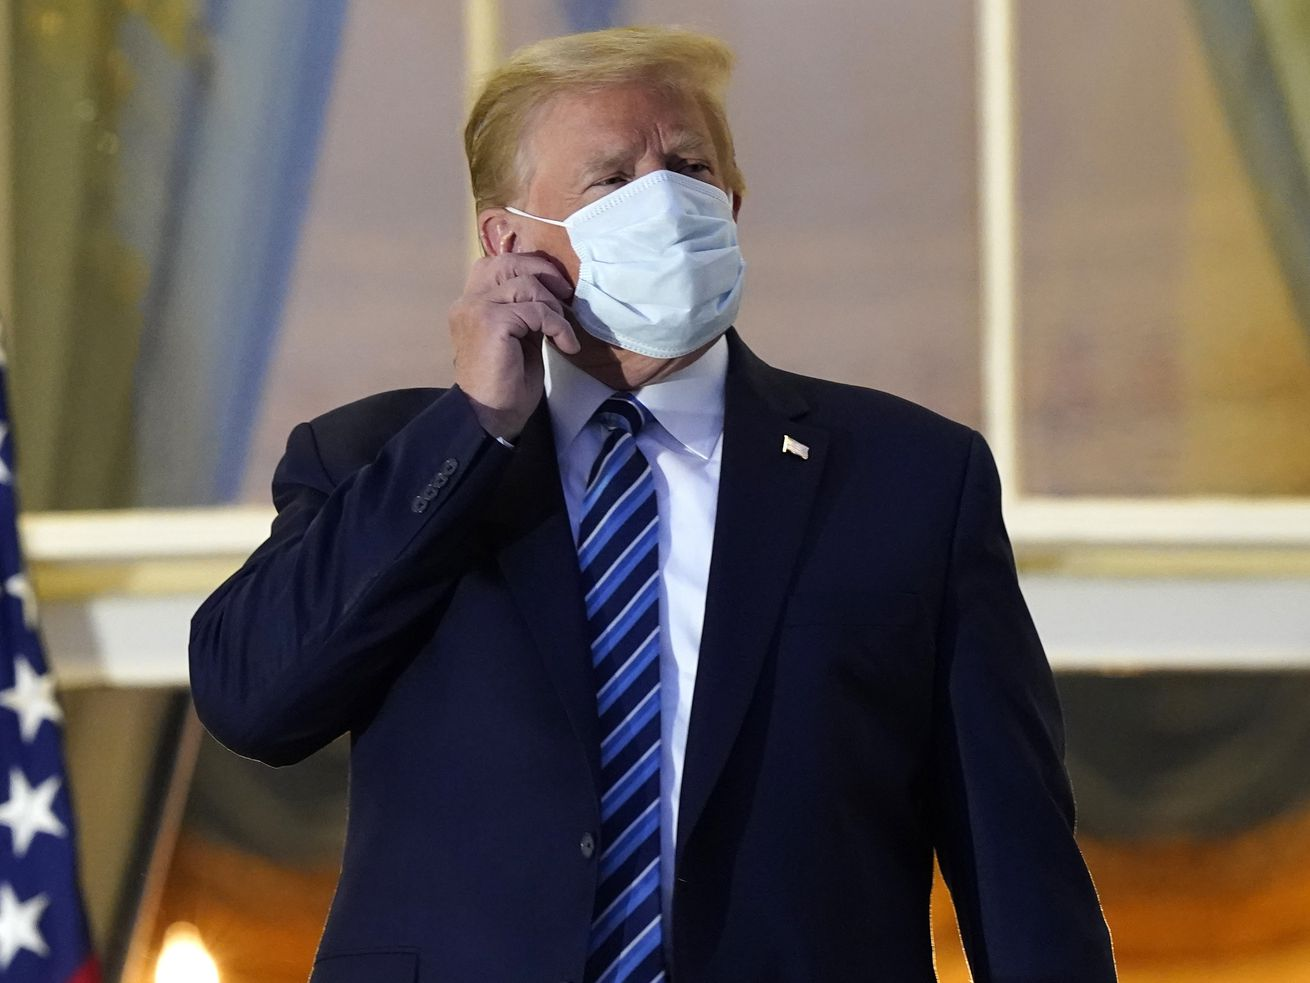 President Donald Trump removes his mask as he stands on the balcony outside of the Blue Room as he returns to the White House Monday, Oct. 5, 2020, in Washington, after leaving Walter Reed National Military Medical Center, in Bethesda, Md. Trump announced he tested positive for COVID-19 on Oct. 2.